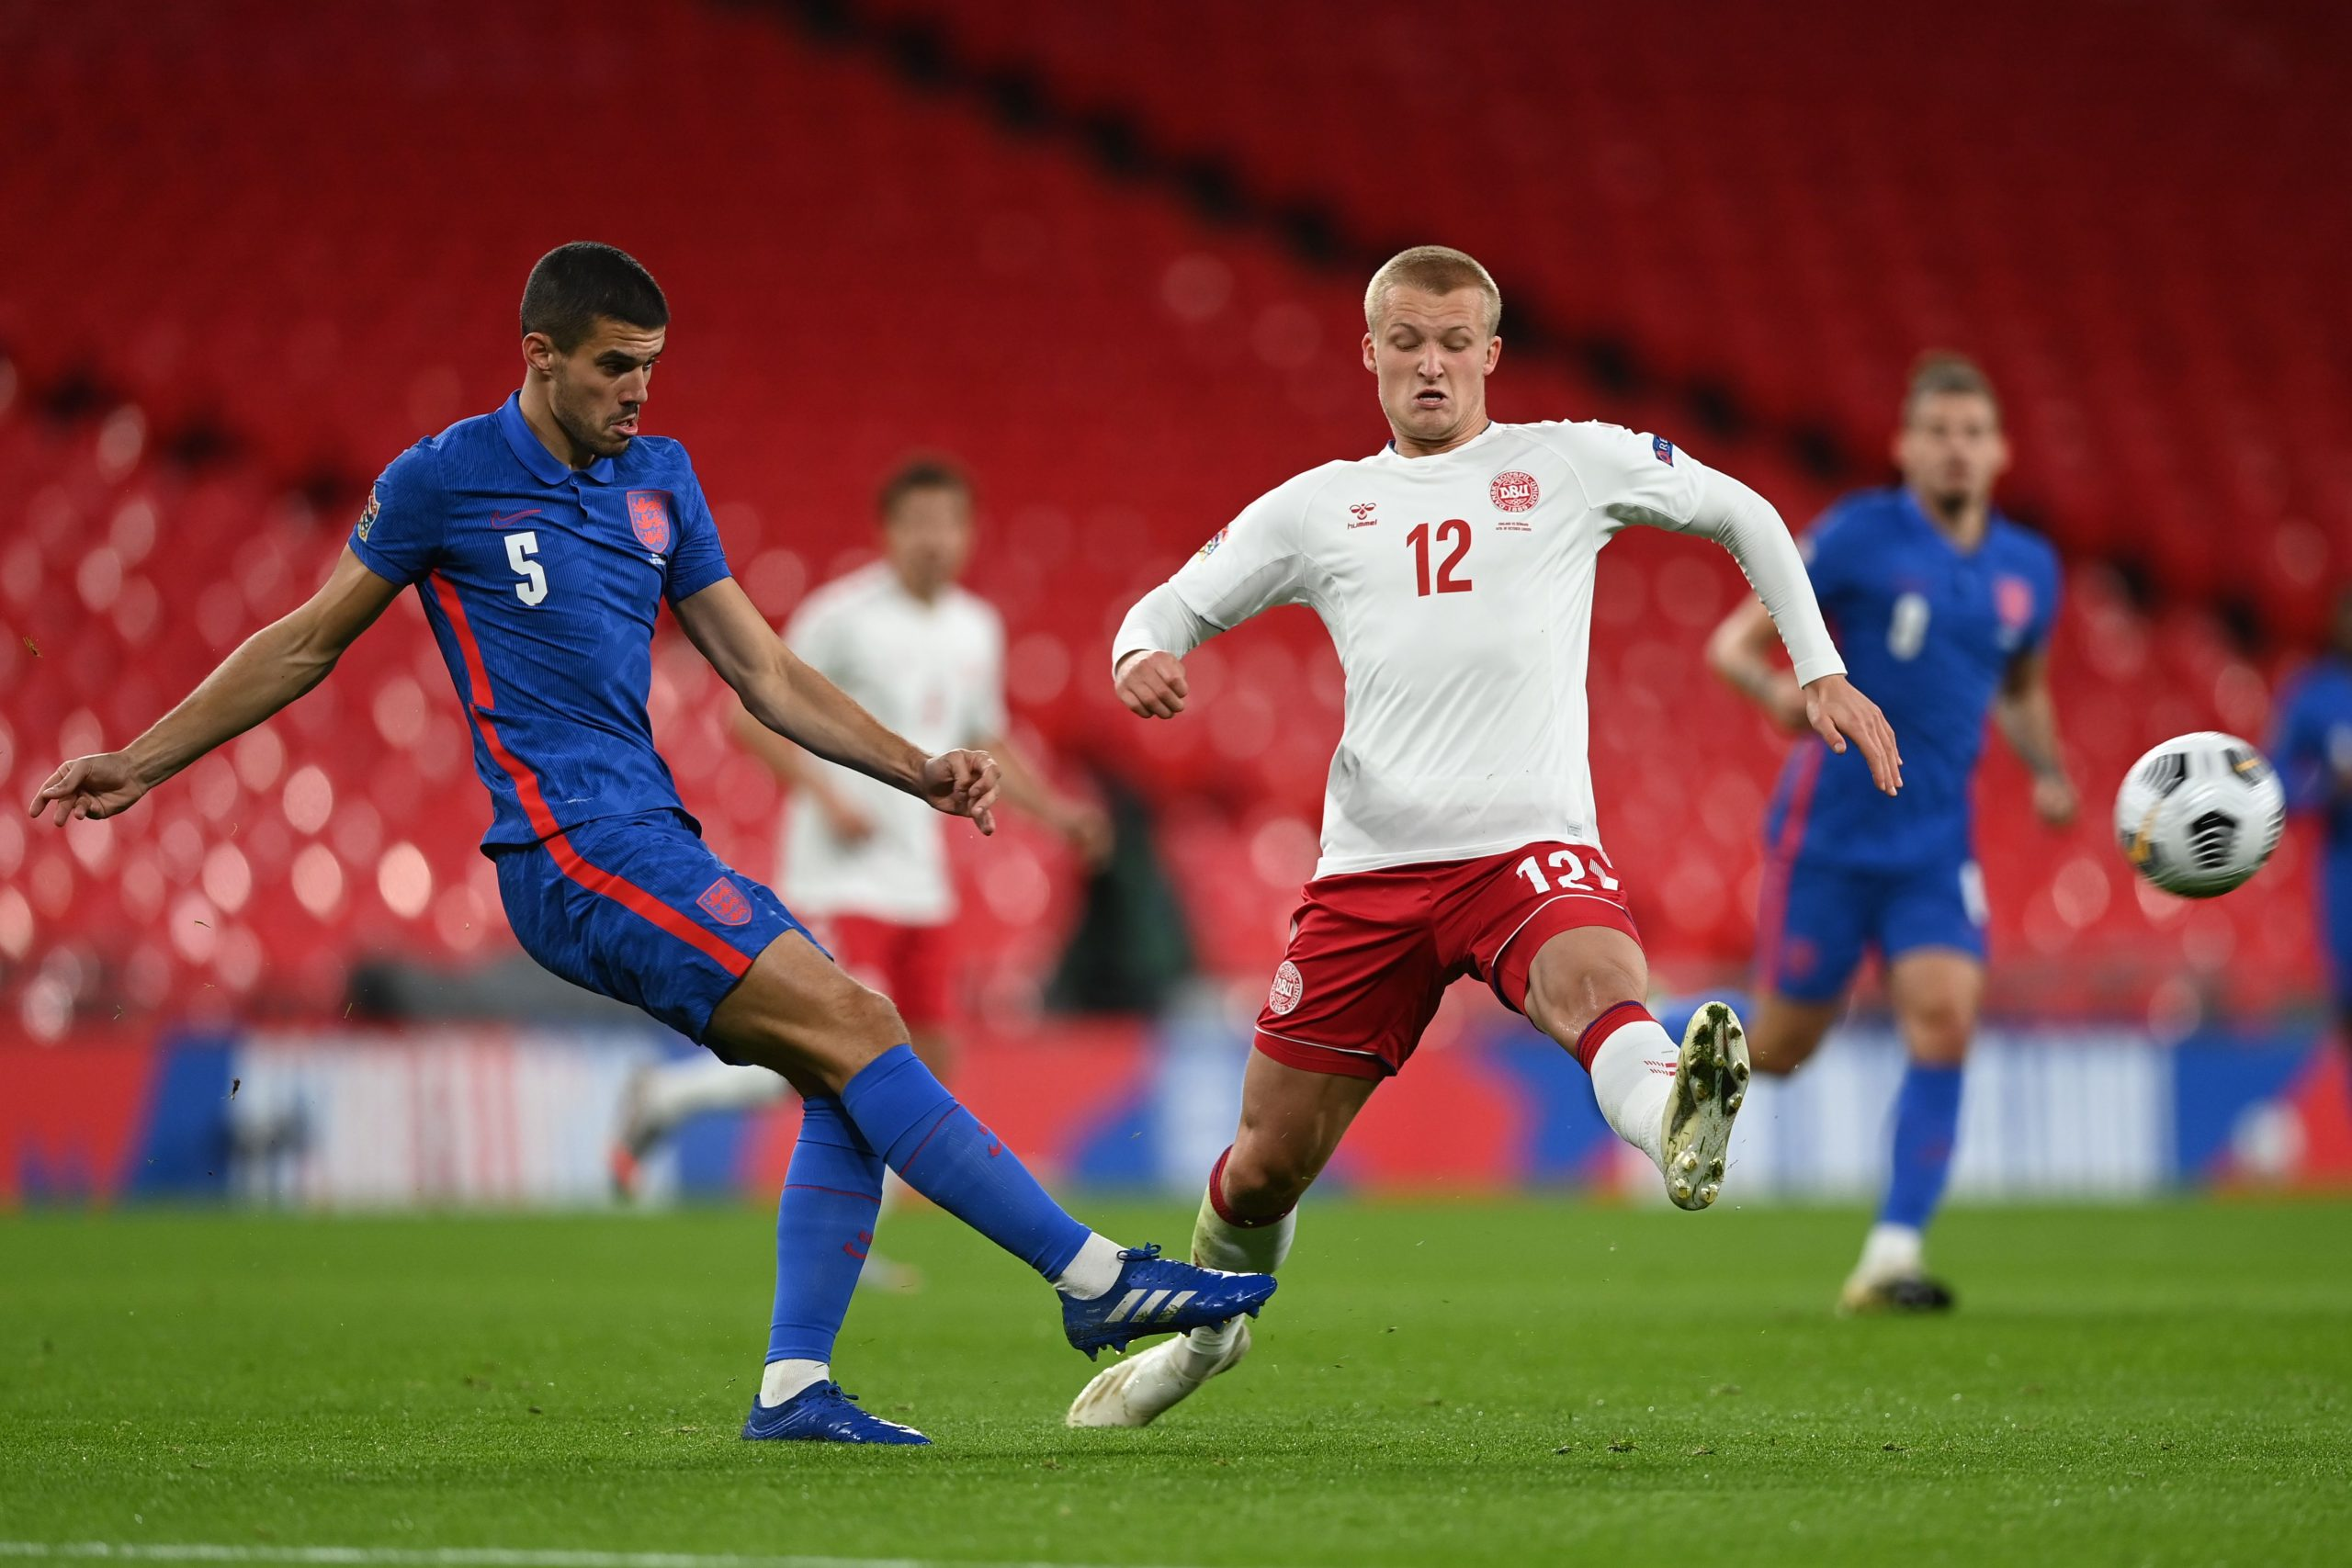 Conor Coady in action for England